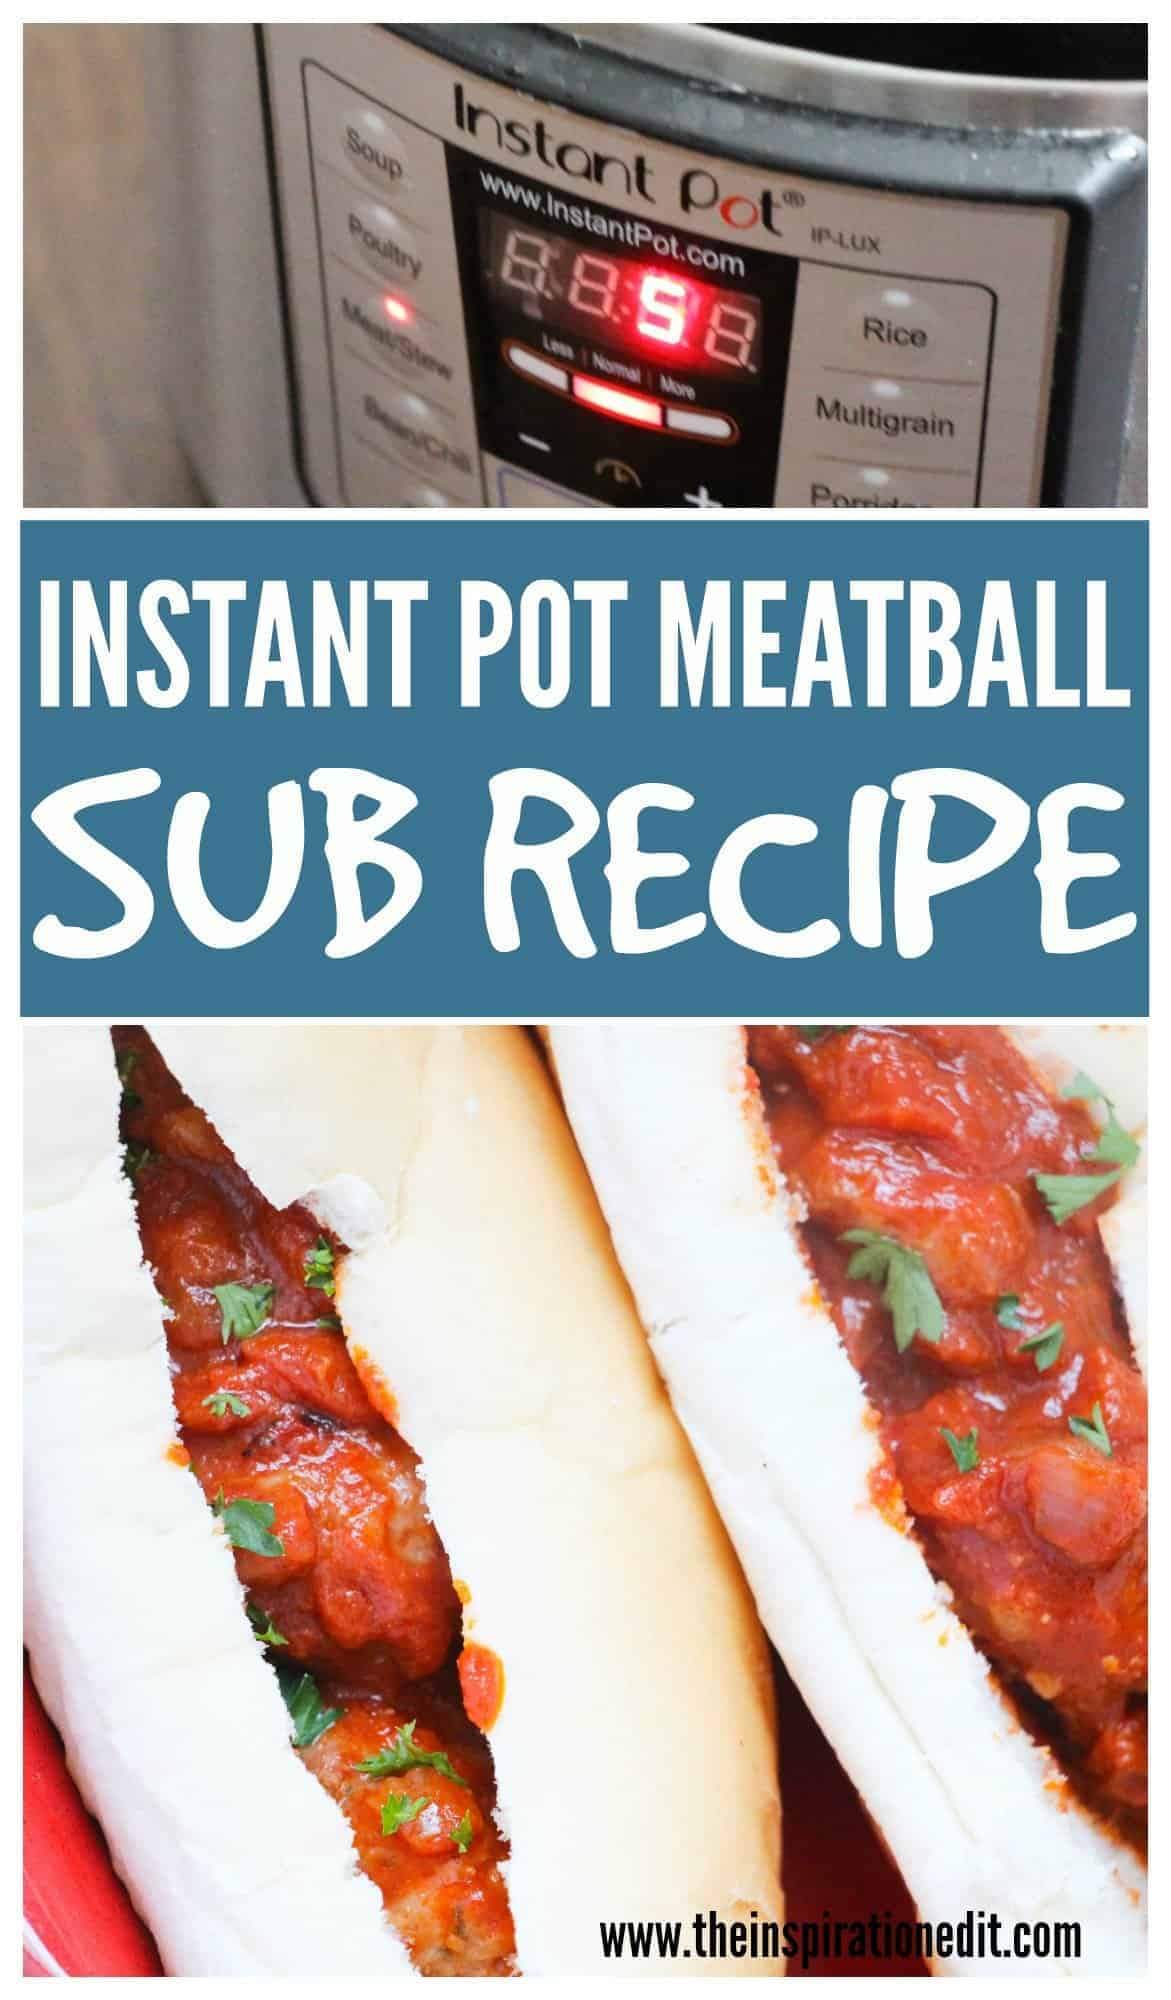 Instant Pot Meatballs Recipe